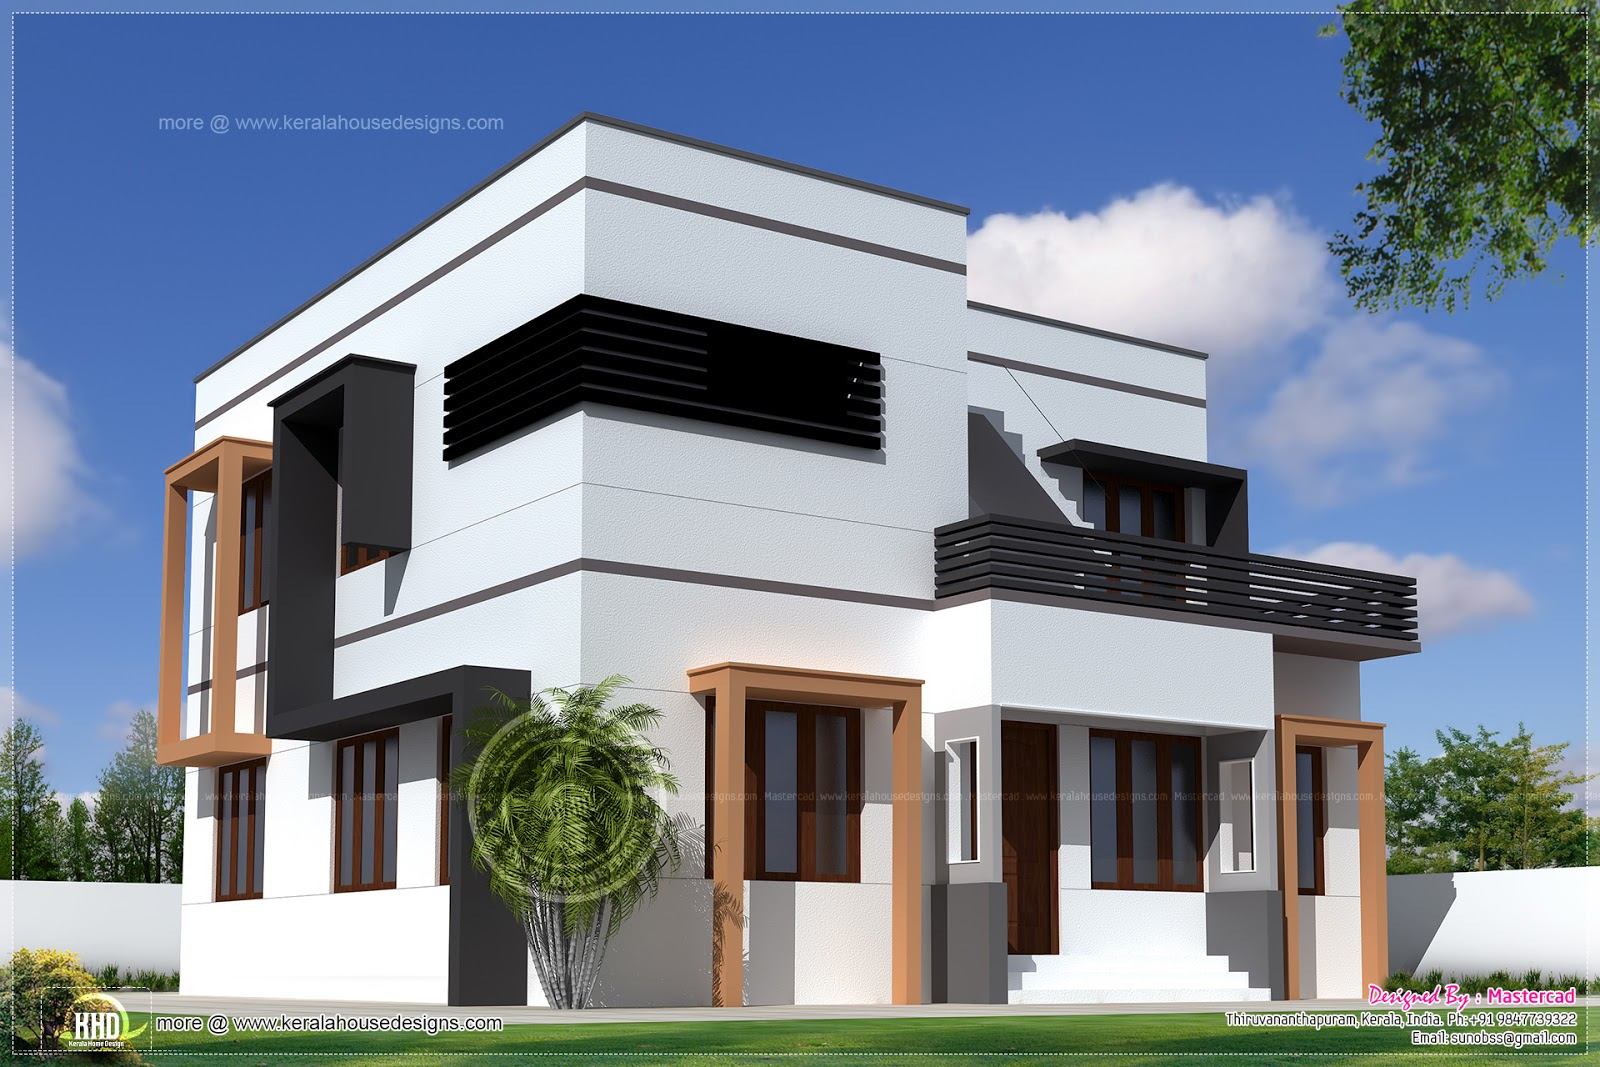 1627 square feet modern villa exterior | Home Kerala Plans